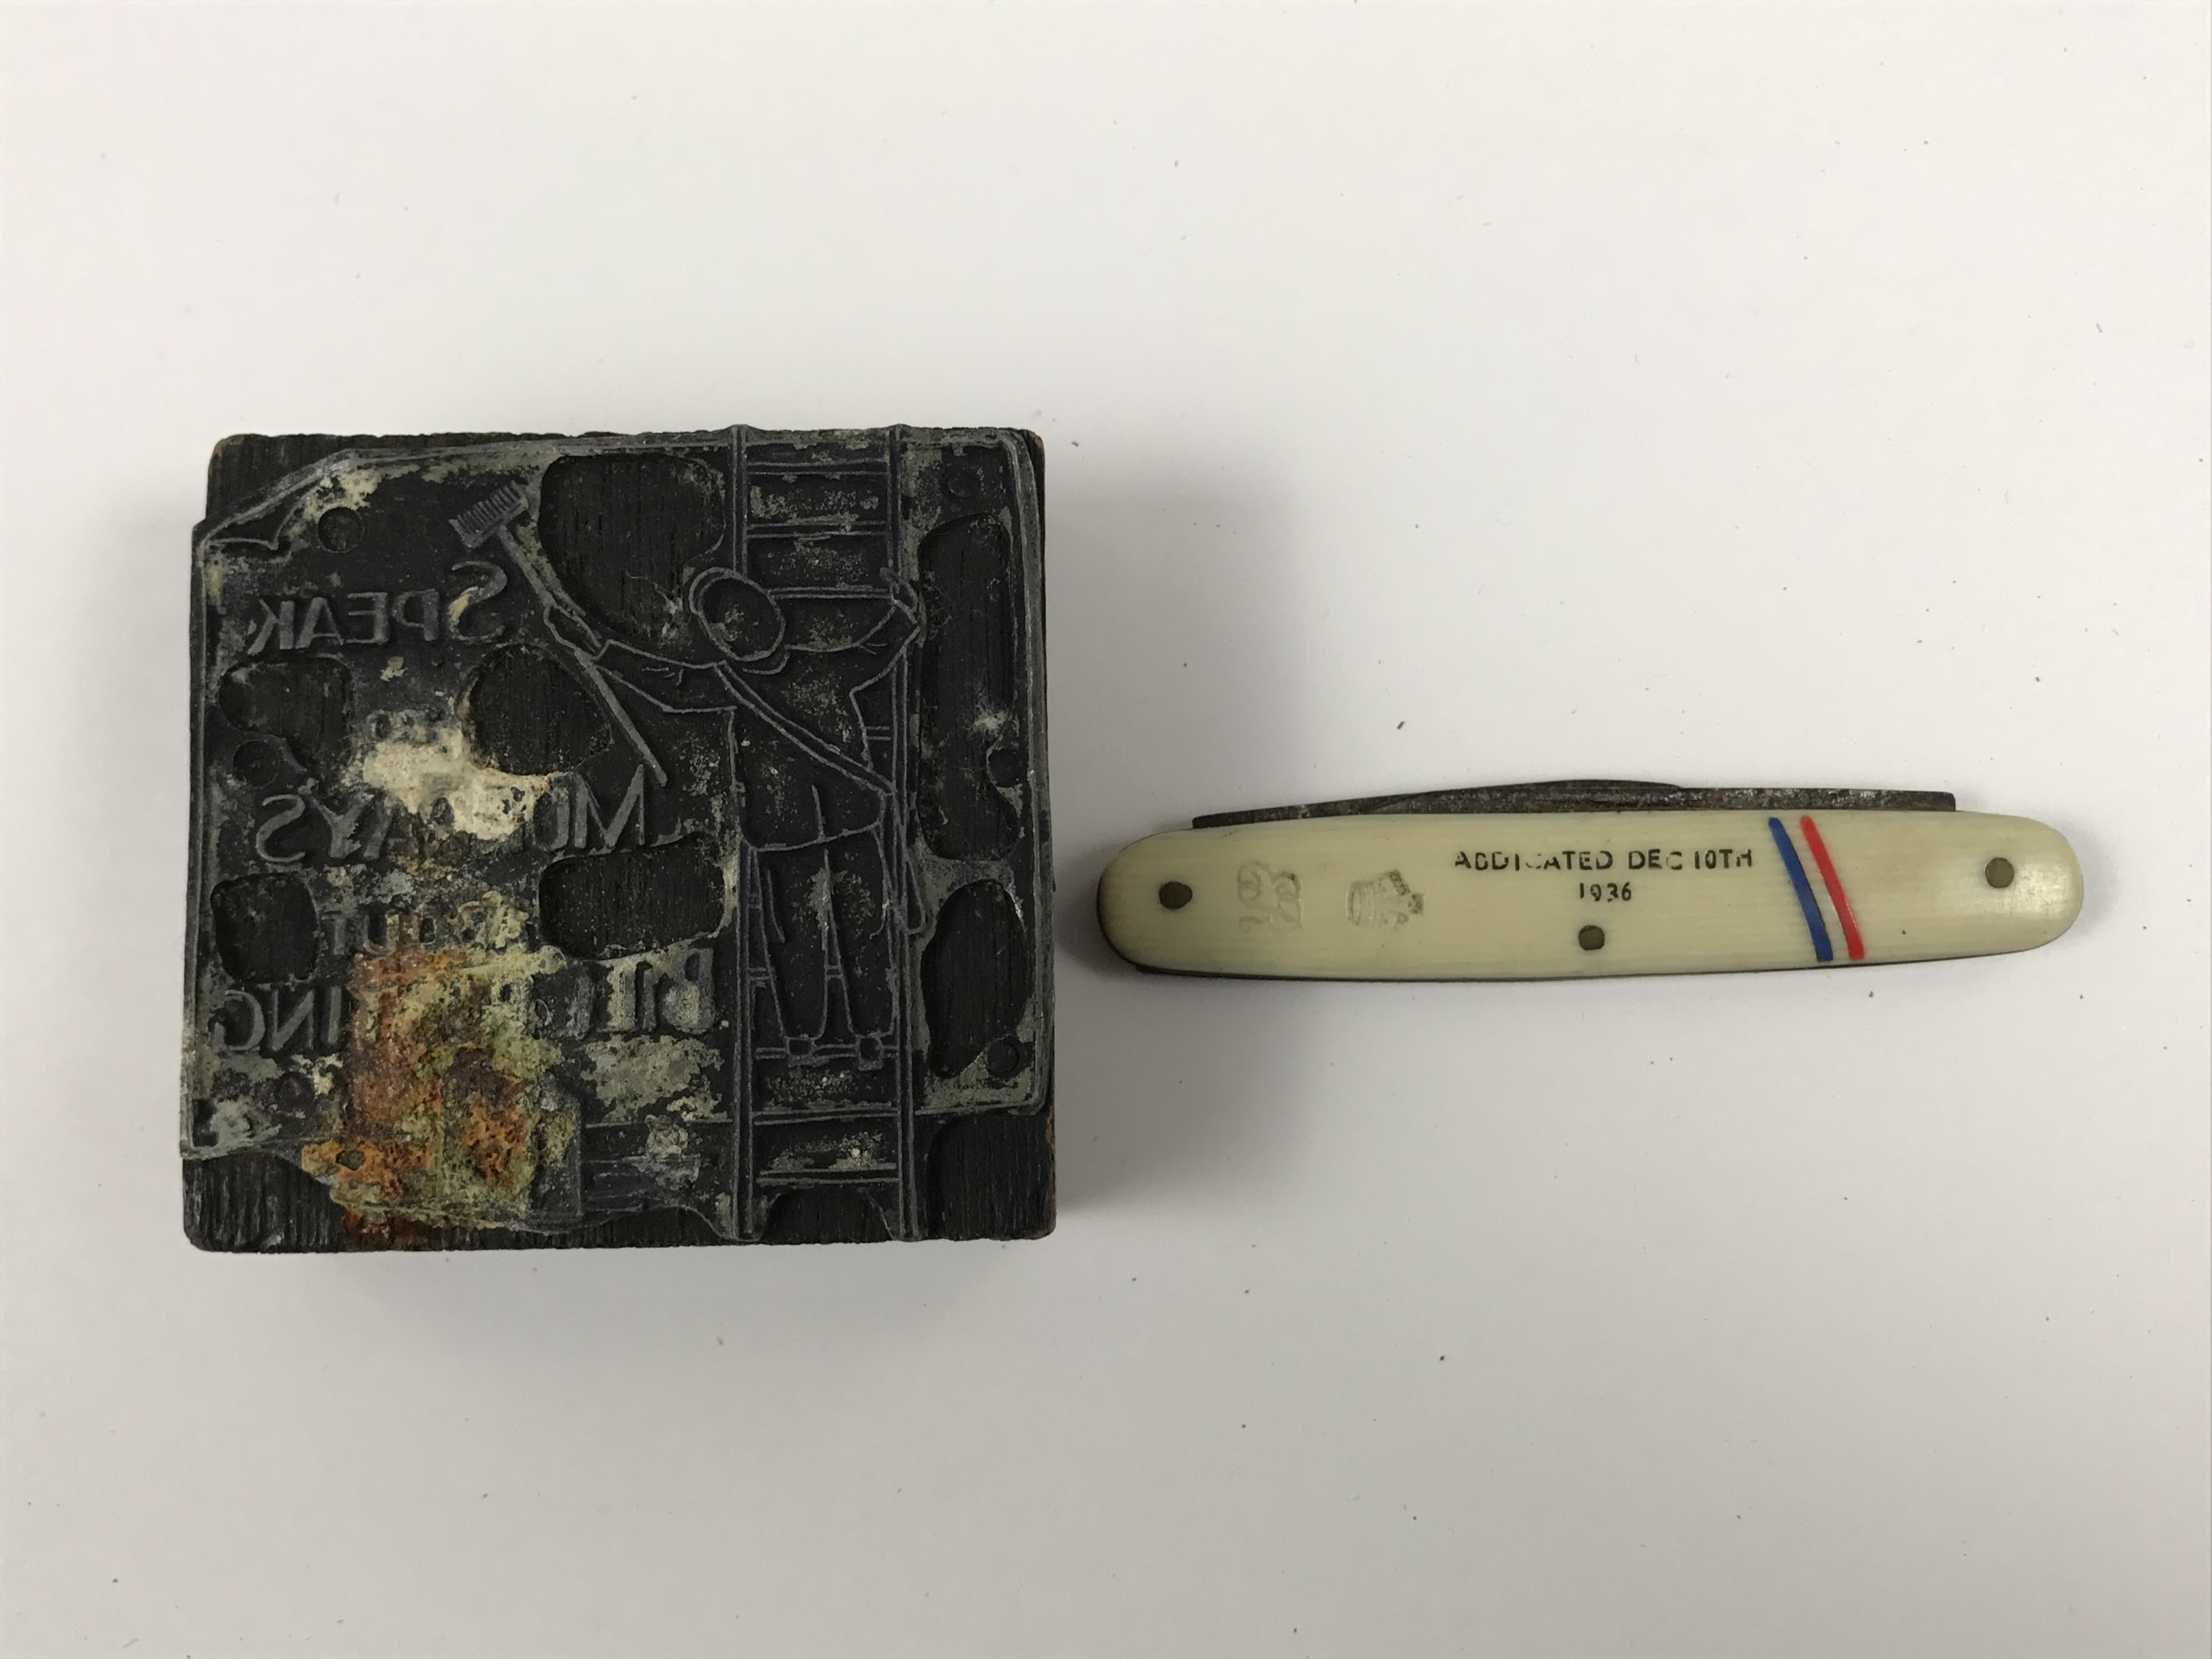 Lot 52 - A 1936 folding pocket knife commemorating the abdication of King Edward VIII, together with an